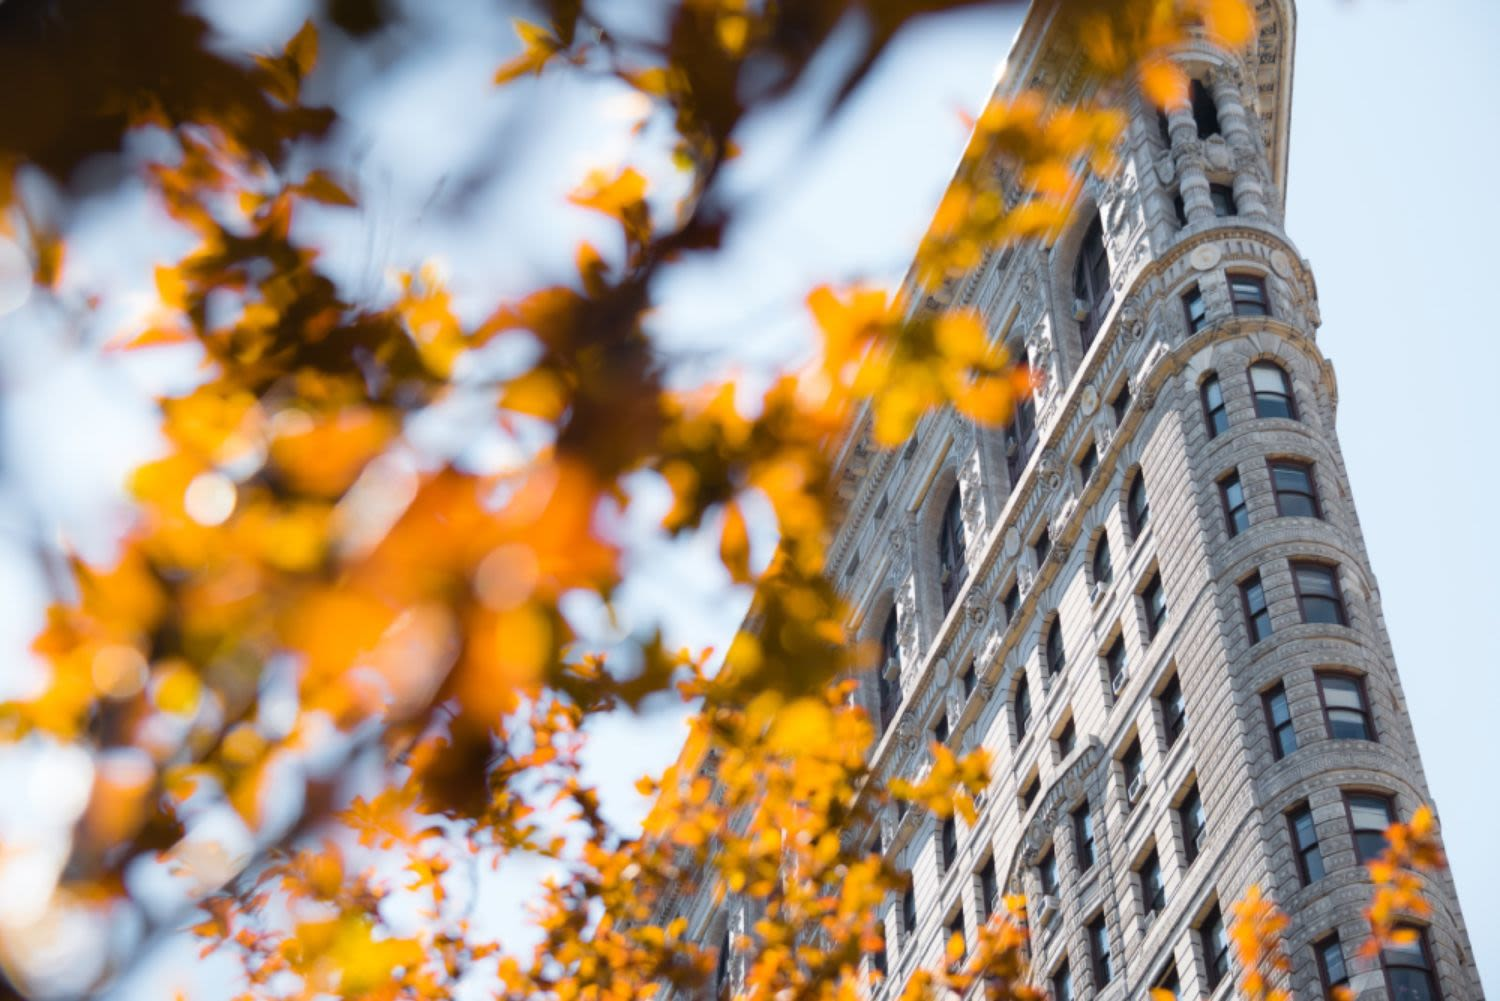 Where to See Fall Foliage in the City